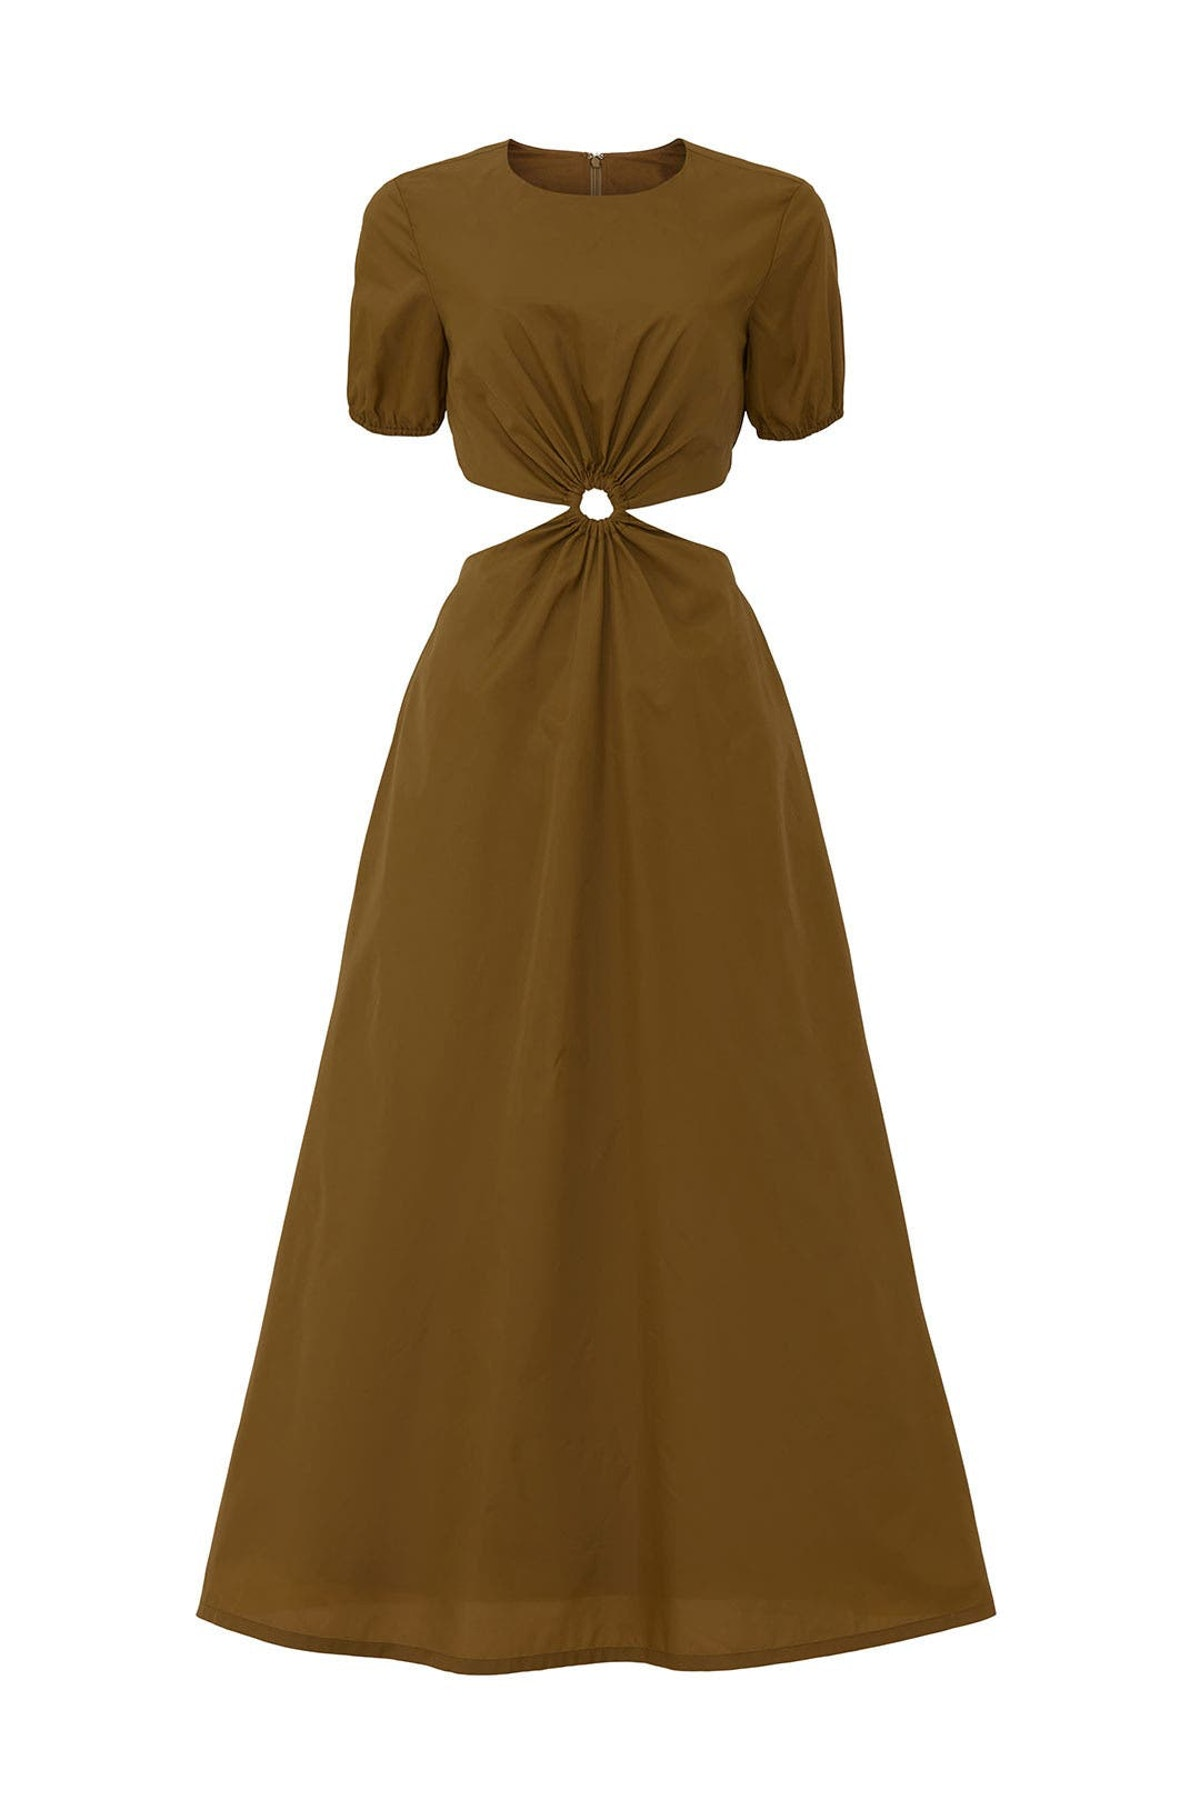 Calpso brown maxi dress from STAUD, available to shop or rent via Rent The Runway.